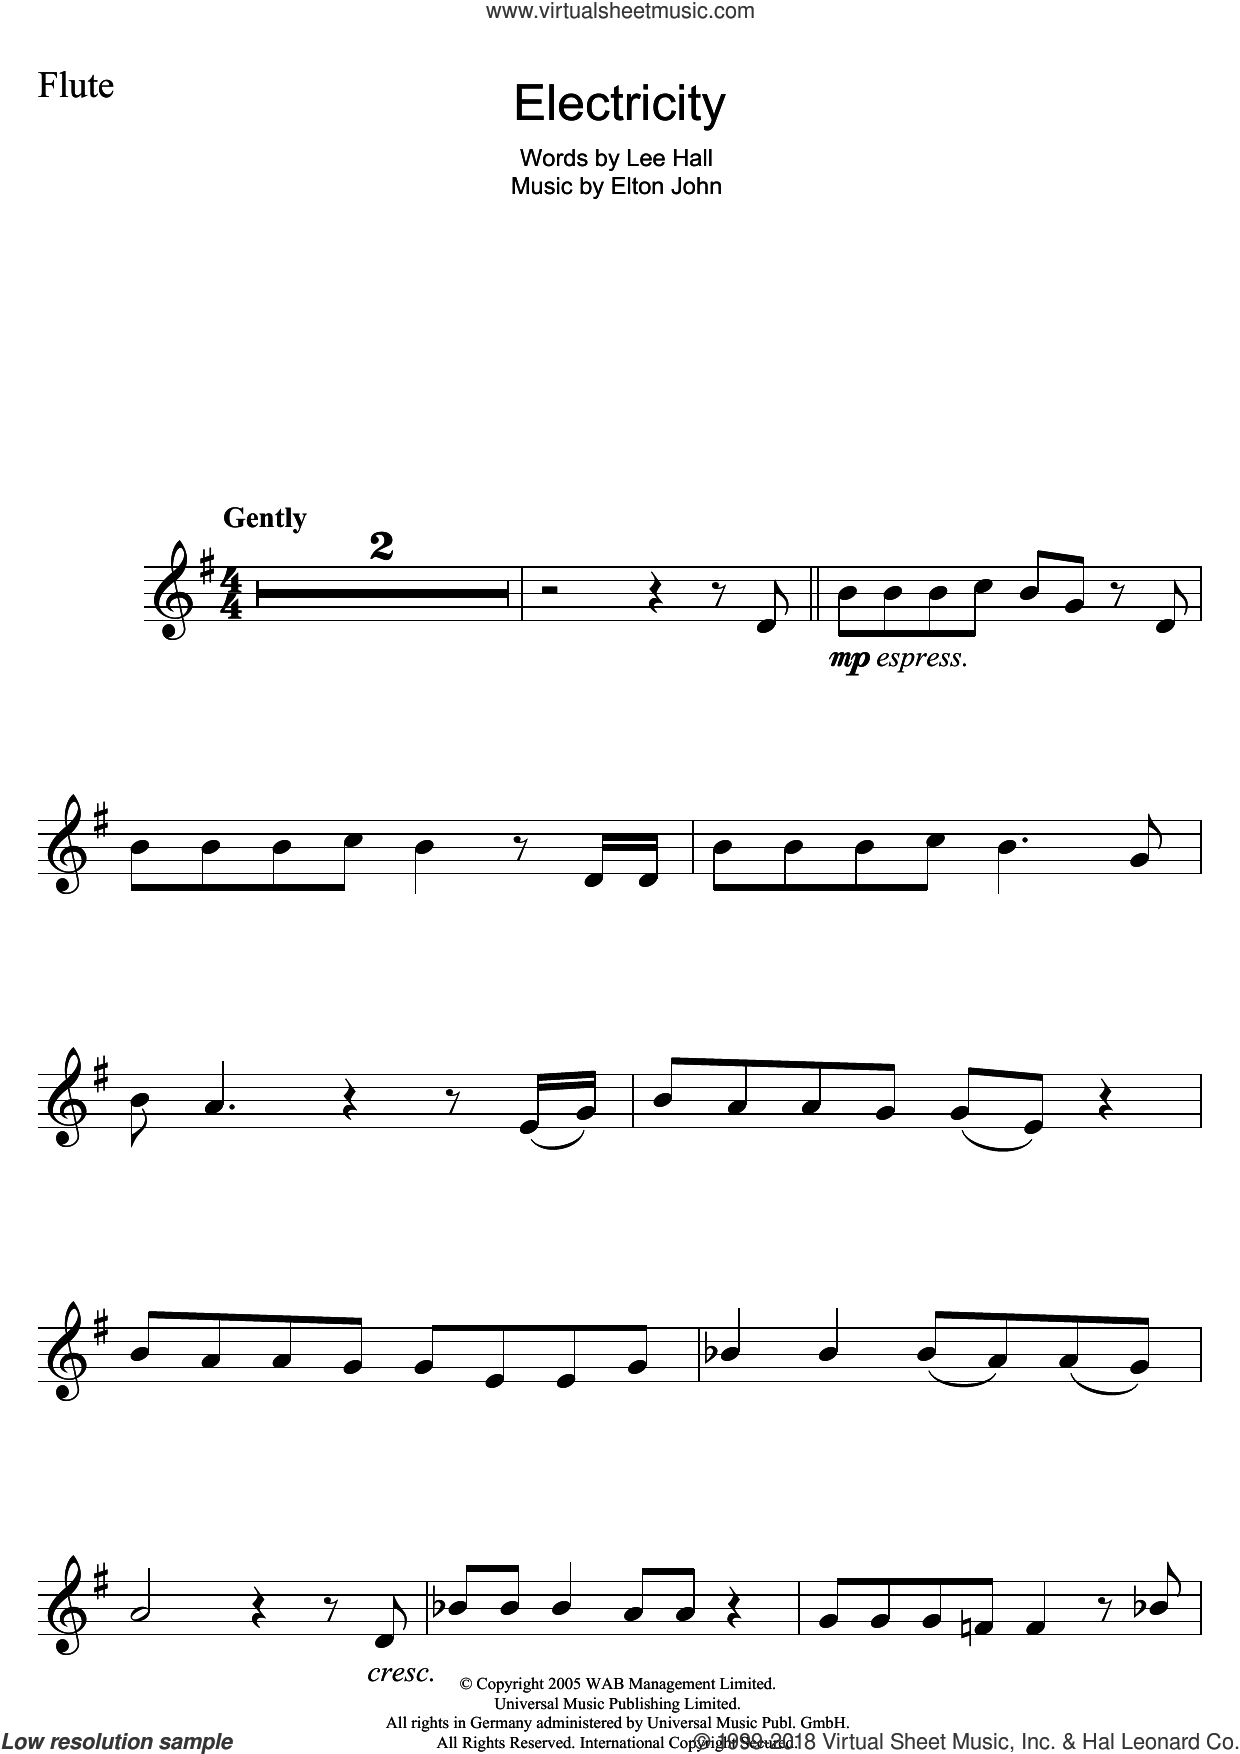 Electricity (from Billy Elliot: The Musical) sheet music for flute solo by Elton John and Lee Hall, intermediate skill level